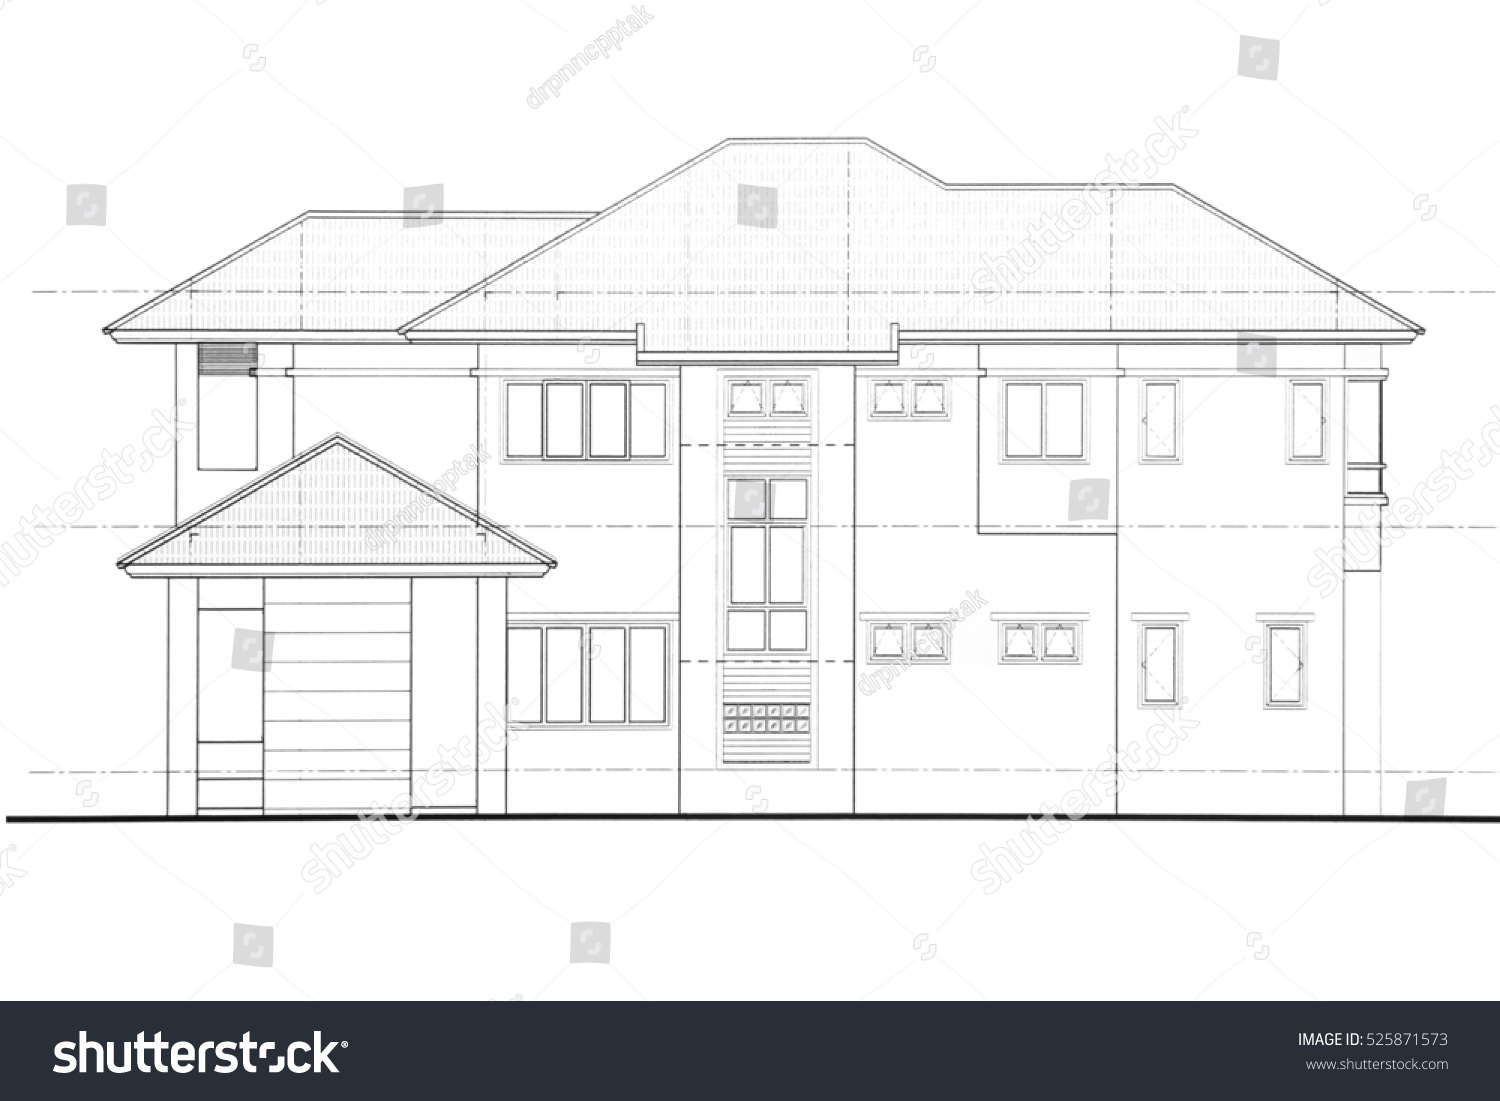 House Plan Side View Stock Illustration 525871573